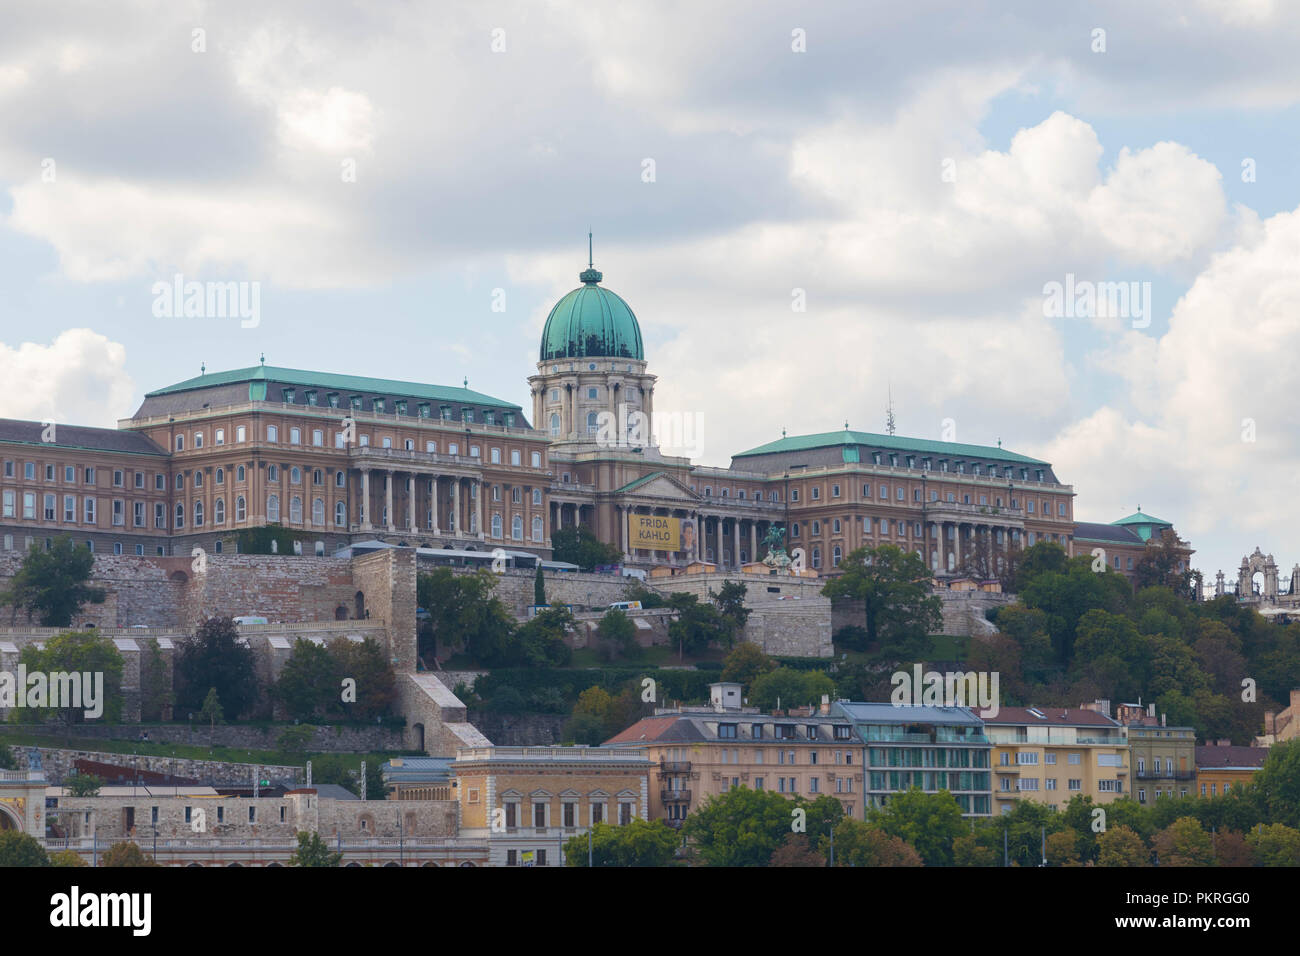 Royal palace castle budapest hungary view sky cloud Stock Photo